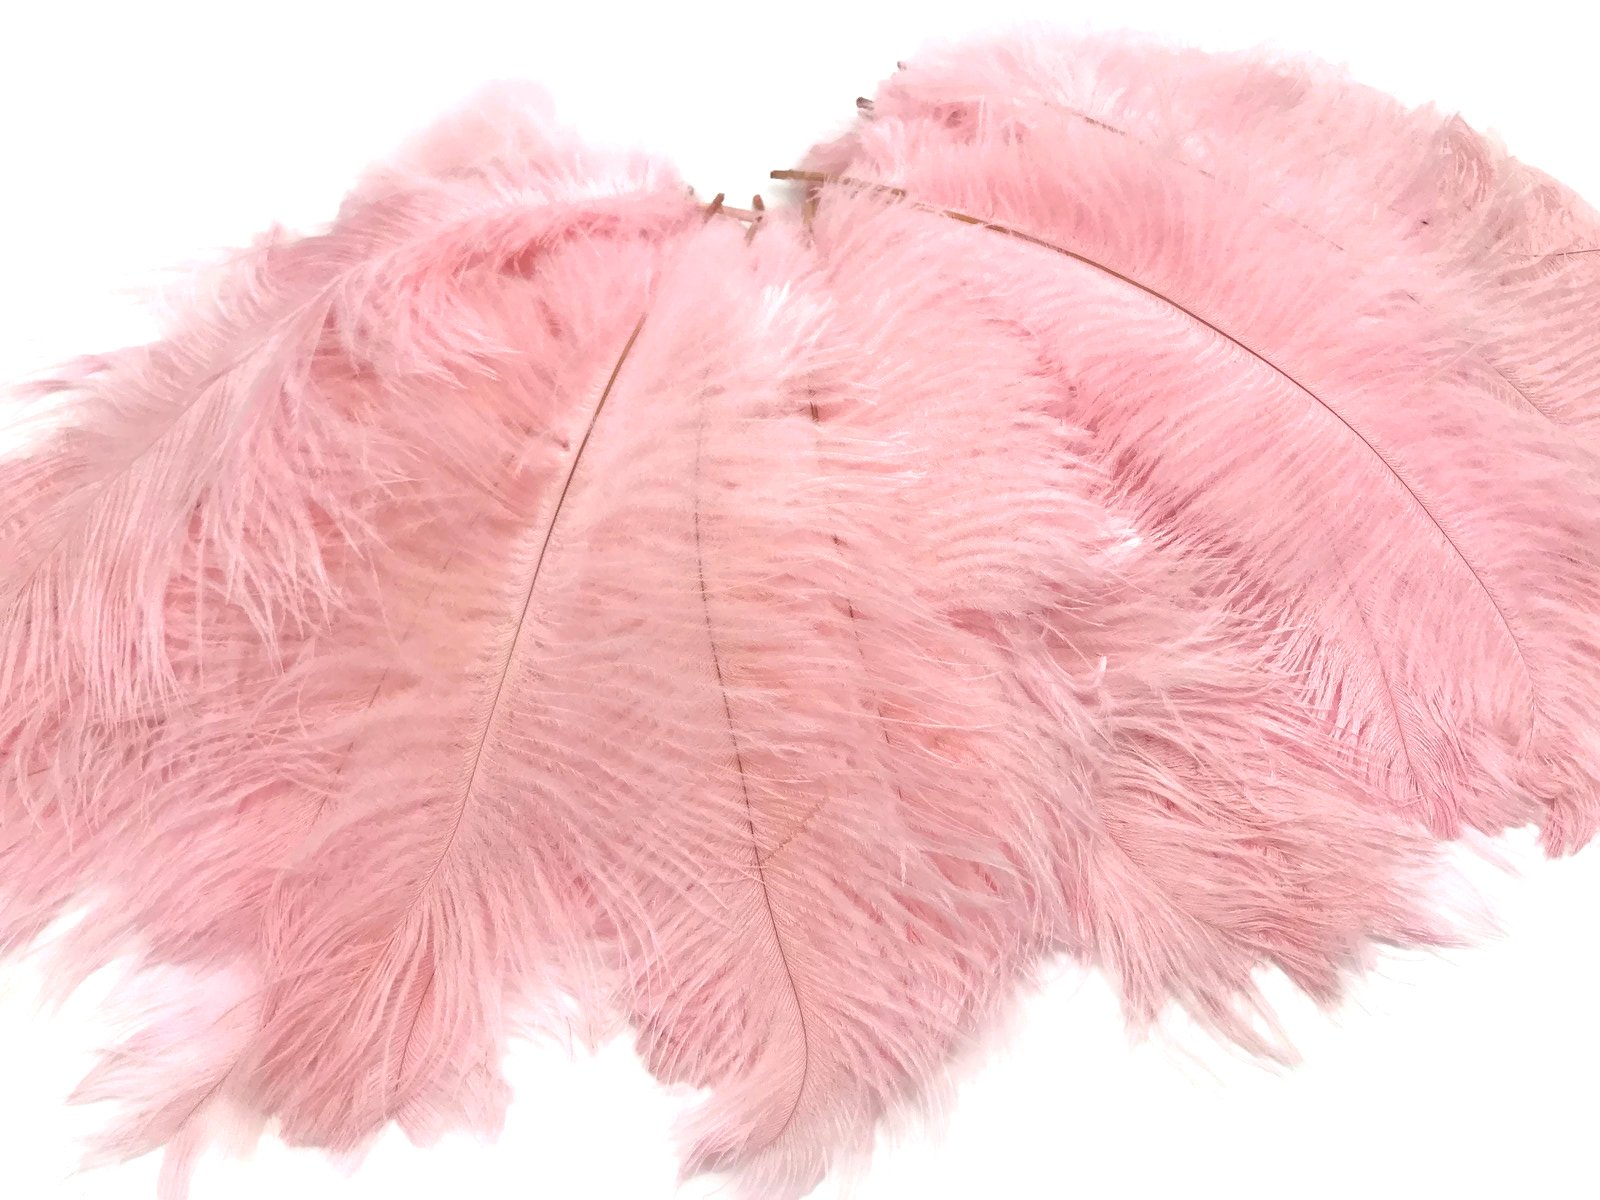 1/2 Lb - 8-10'' Baby Pink Wholesale Ostrich Drab Feathers (Bulk) Party Centerpiece Wedding Gatsby | Moonlight Feather by Moonlight Feather | USA SELLER (Image #5)